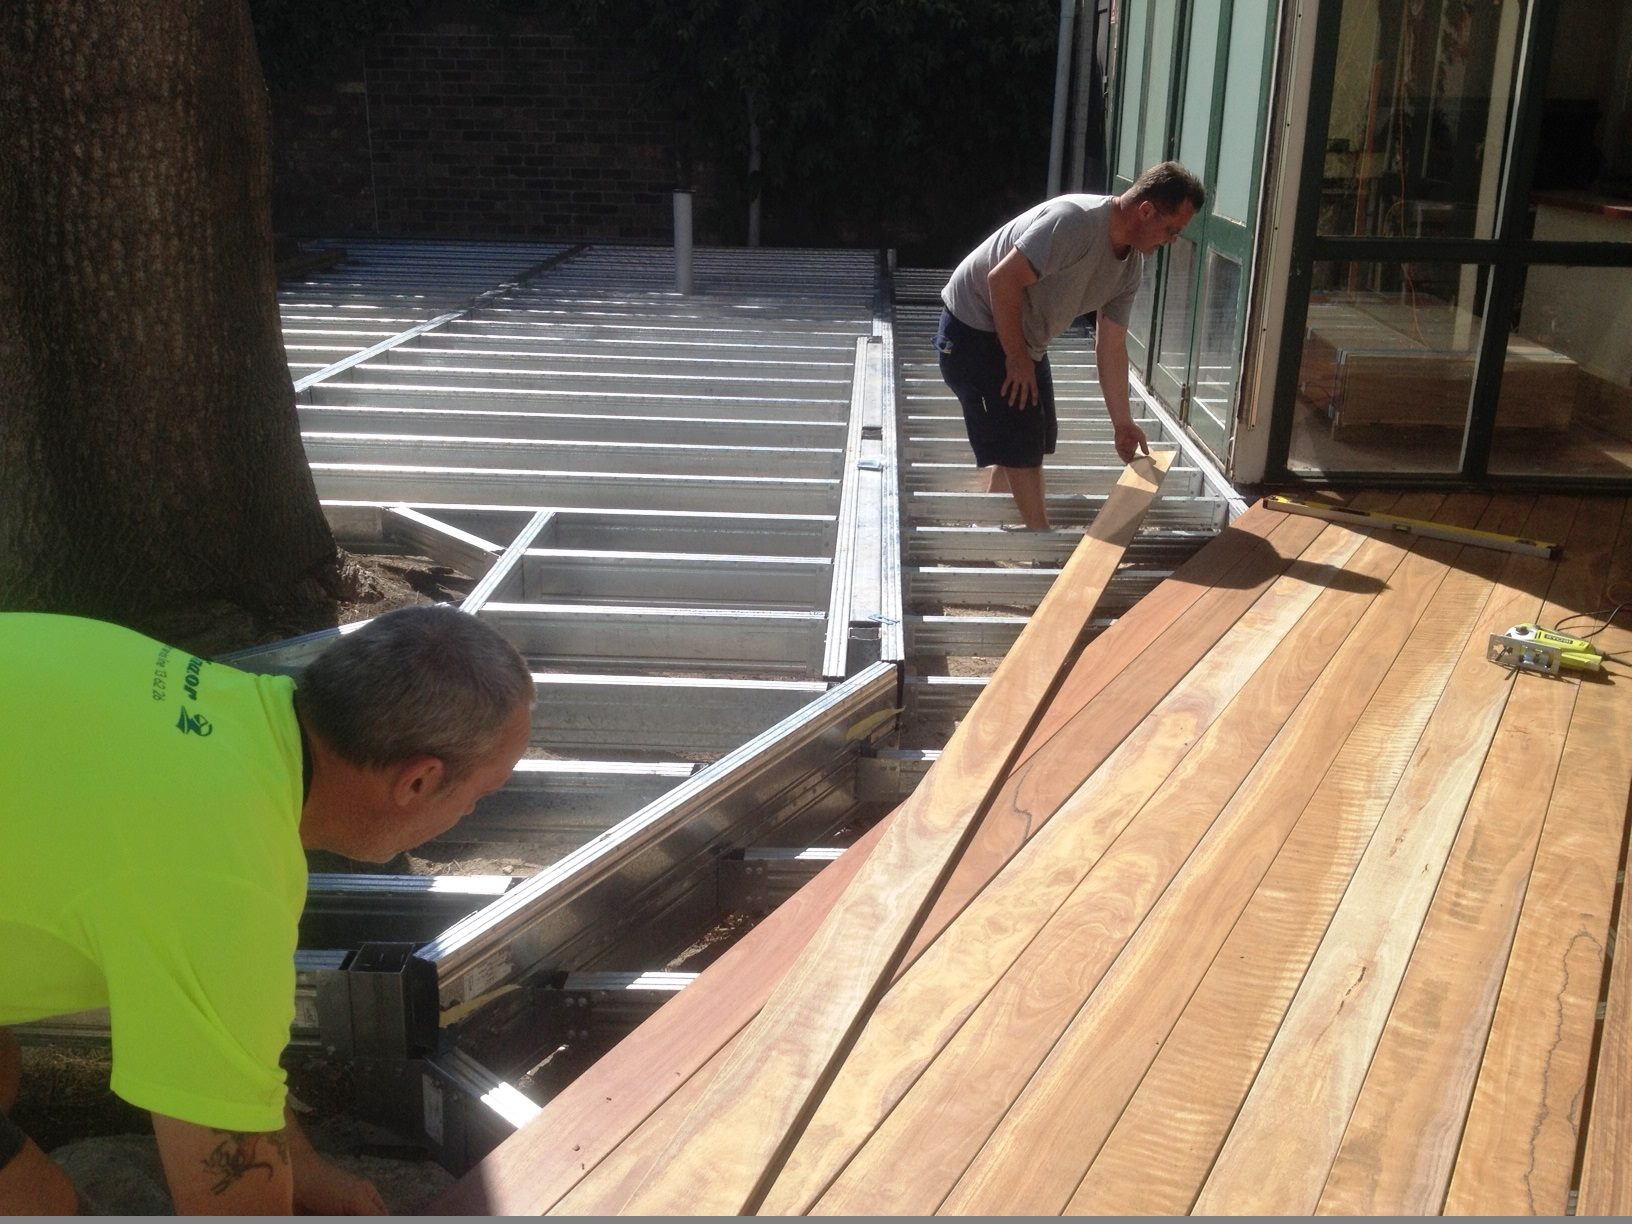 Installation of wide decking boards on a commercial deck at a pub outdoor dining area